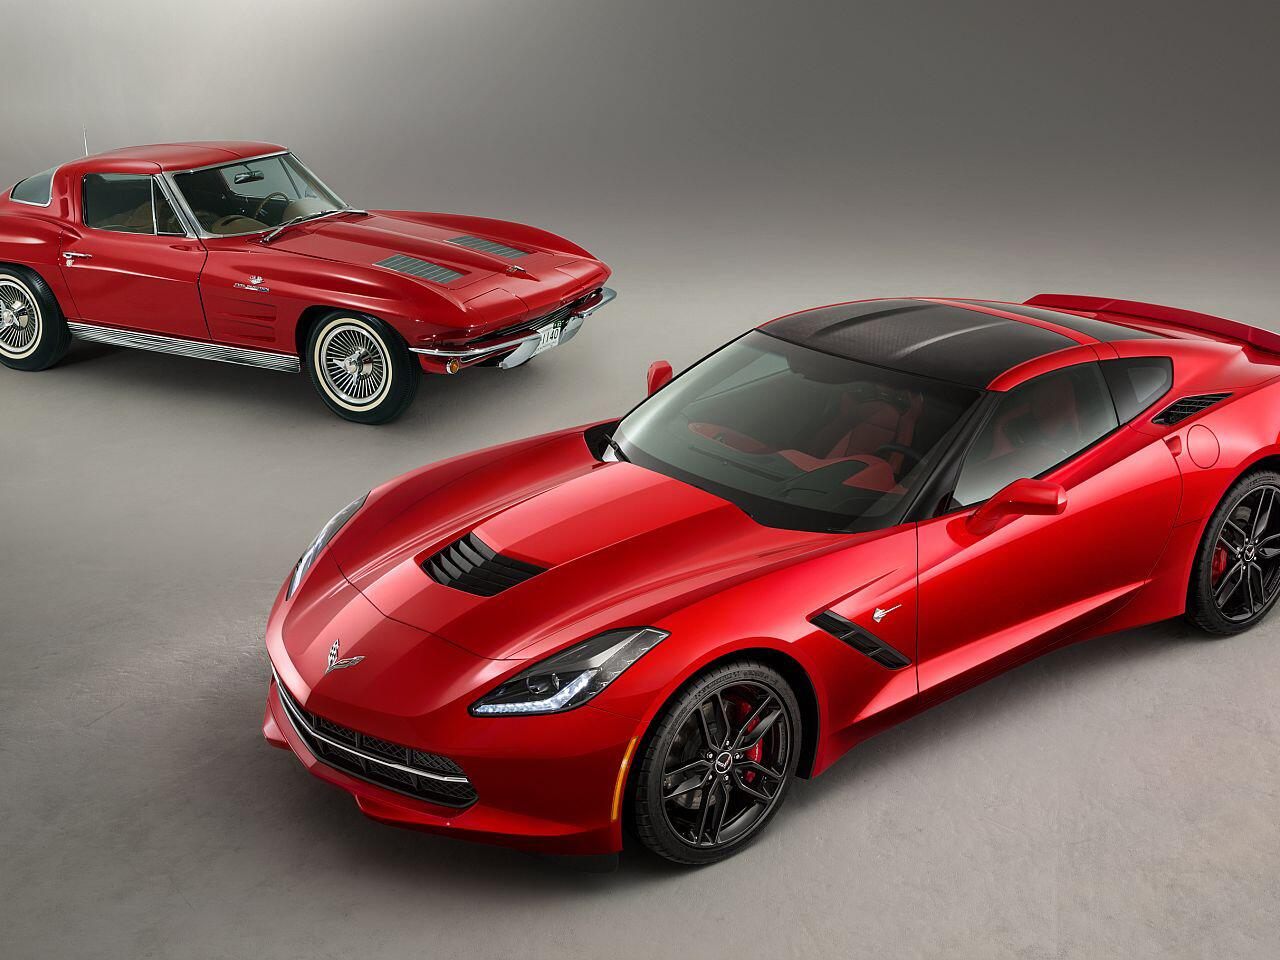 Bild zu Corvette Stingray